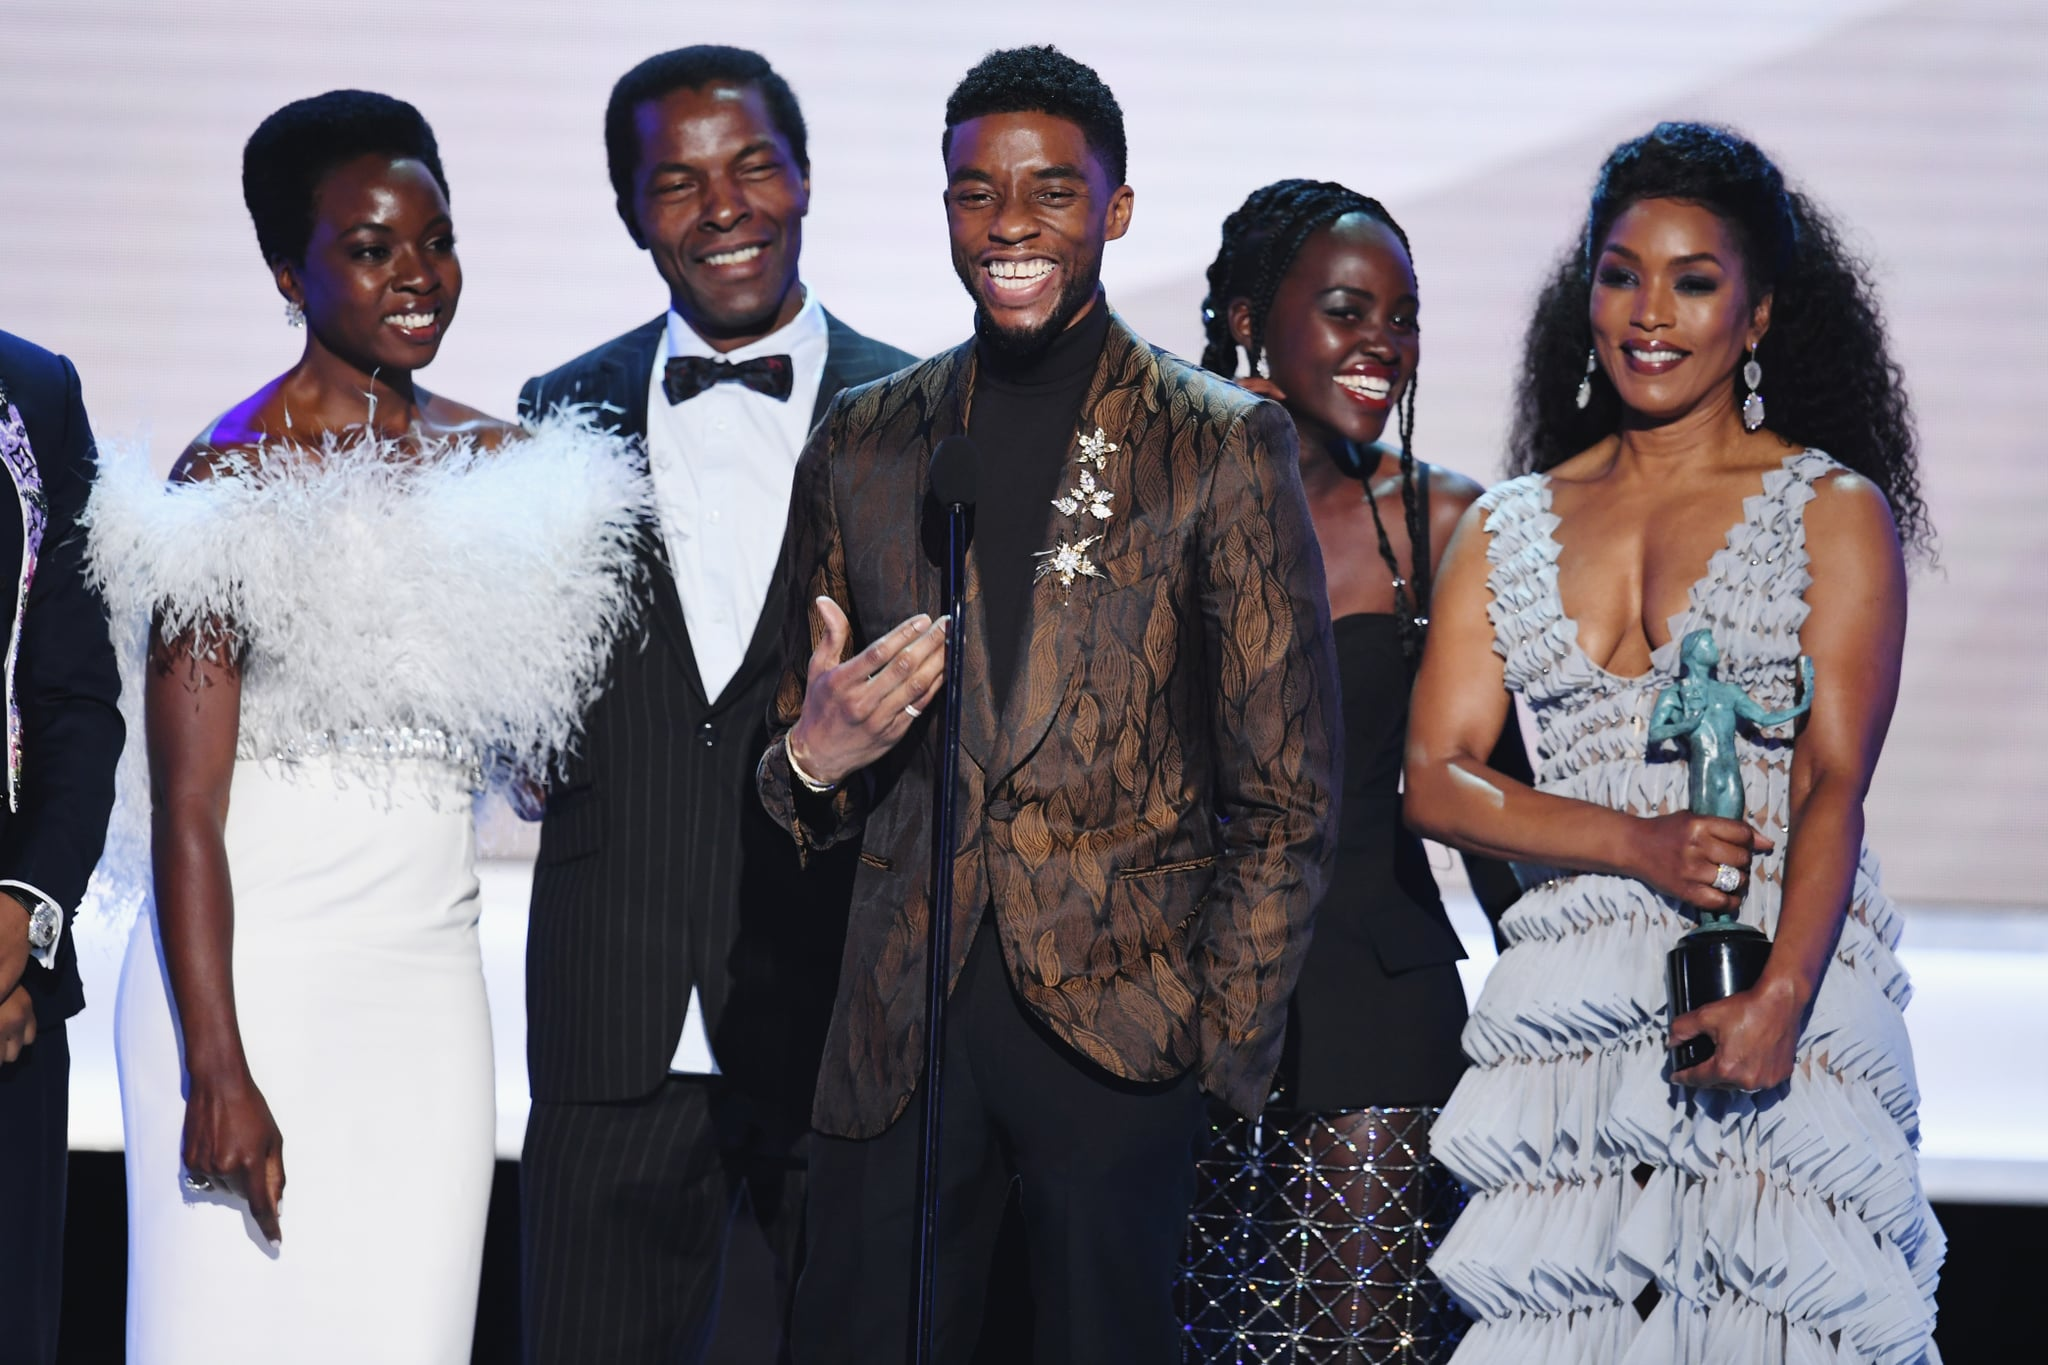 LOS ANGELES, CA - JANUARY 27:  The cast of ?Black Panther? accepts Outstanding Performance by a Cast in a Motion Picture onstage during the 25th Annual Screen Actors Guild Awards at The Shrine Auditorium on January 27, 2019 in Los Angeles, California. 480493  (Photo by Kevin Winter/Getty Images for Turner)